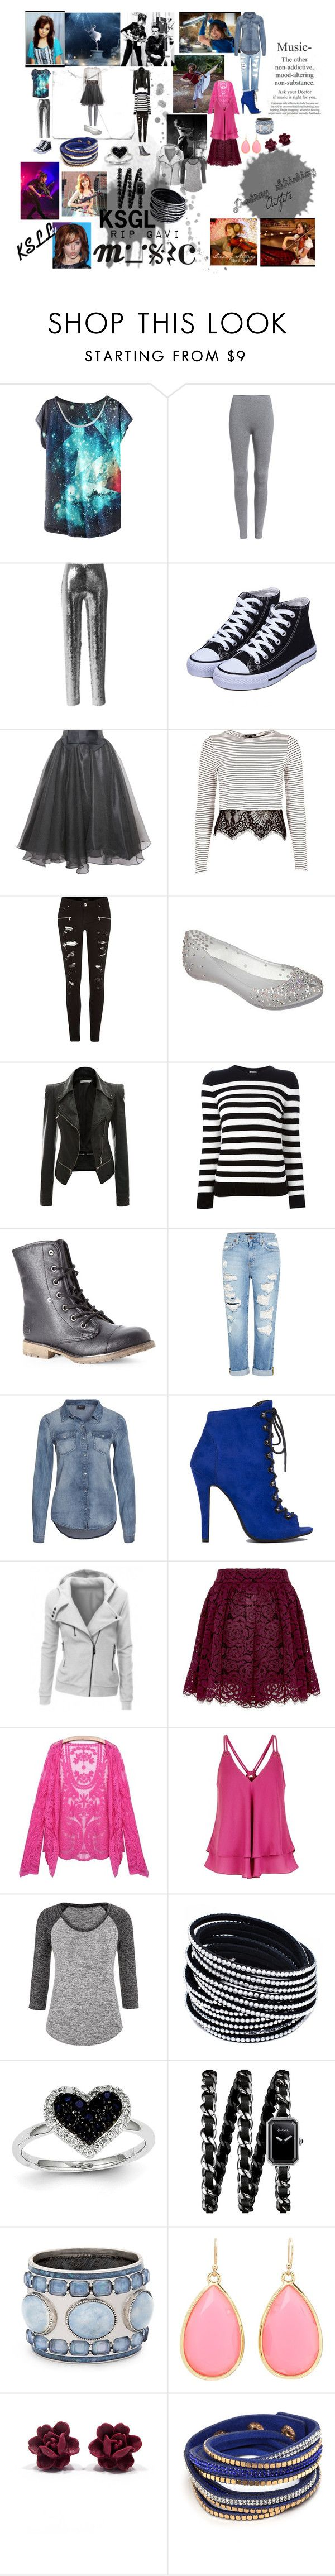 """""""Lindsey Stirling Outfits"""" by phelba-hanna ❤ liked on Polyvore featuring Silent Night, Isabel Marant, Relaxfeel, River Island, Melissa, Yves Saint Laurent, Dirty Laundry, Genetic Denim, VILA and Akira Black Label"""